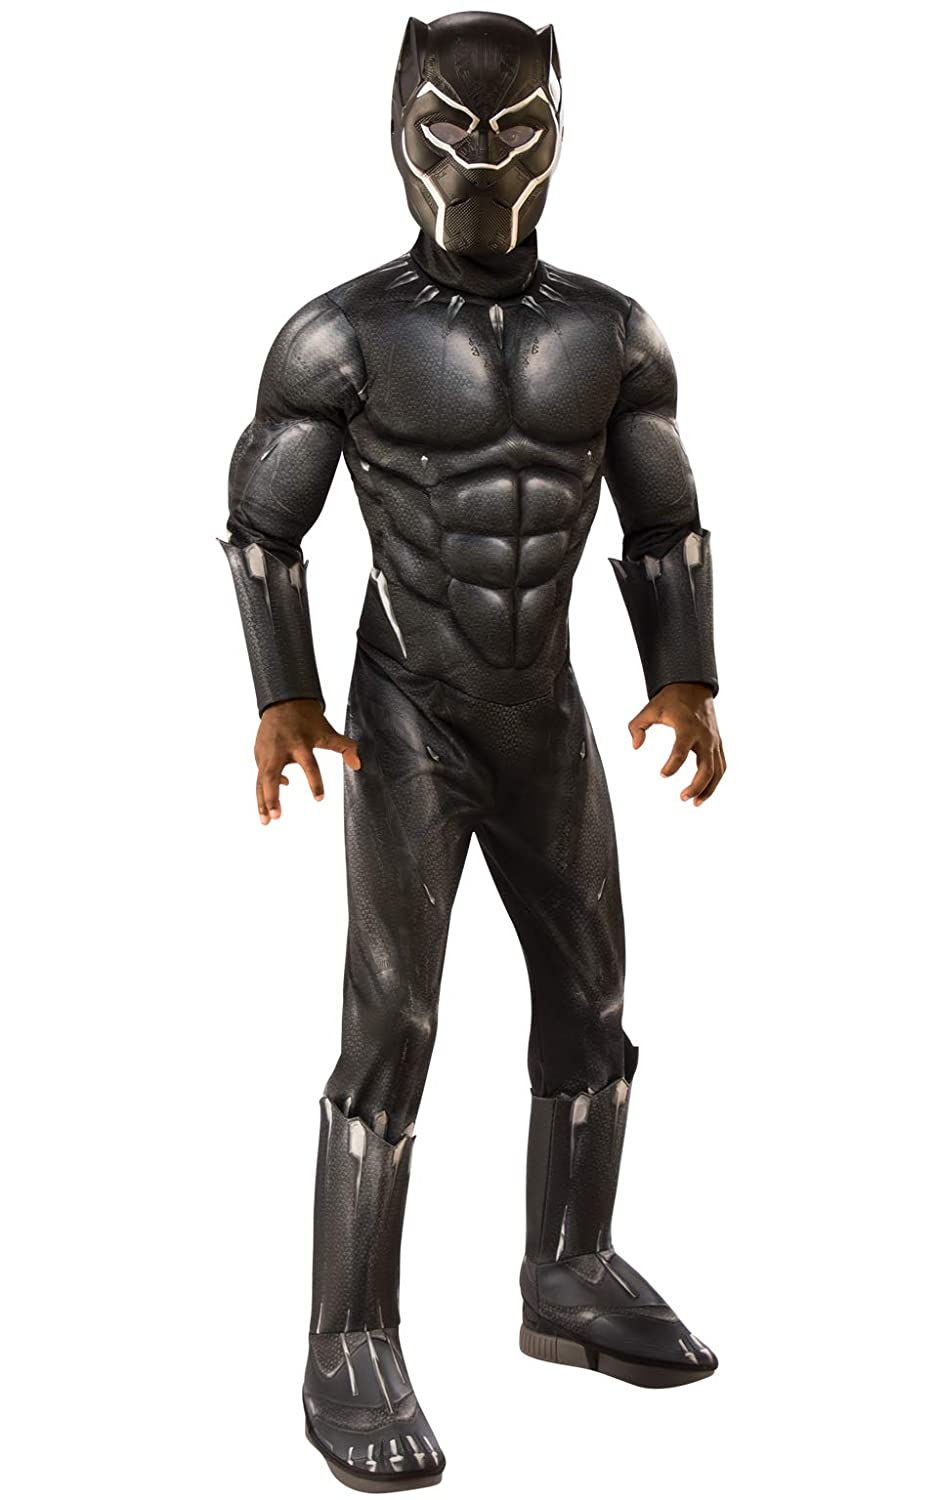 Deluxe Black Panther Costume for Children Rubies Costume Co